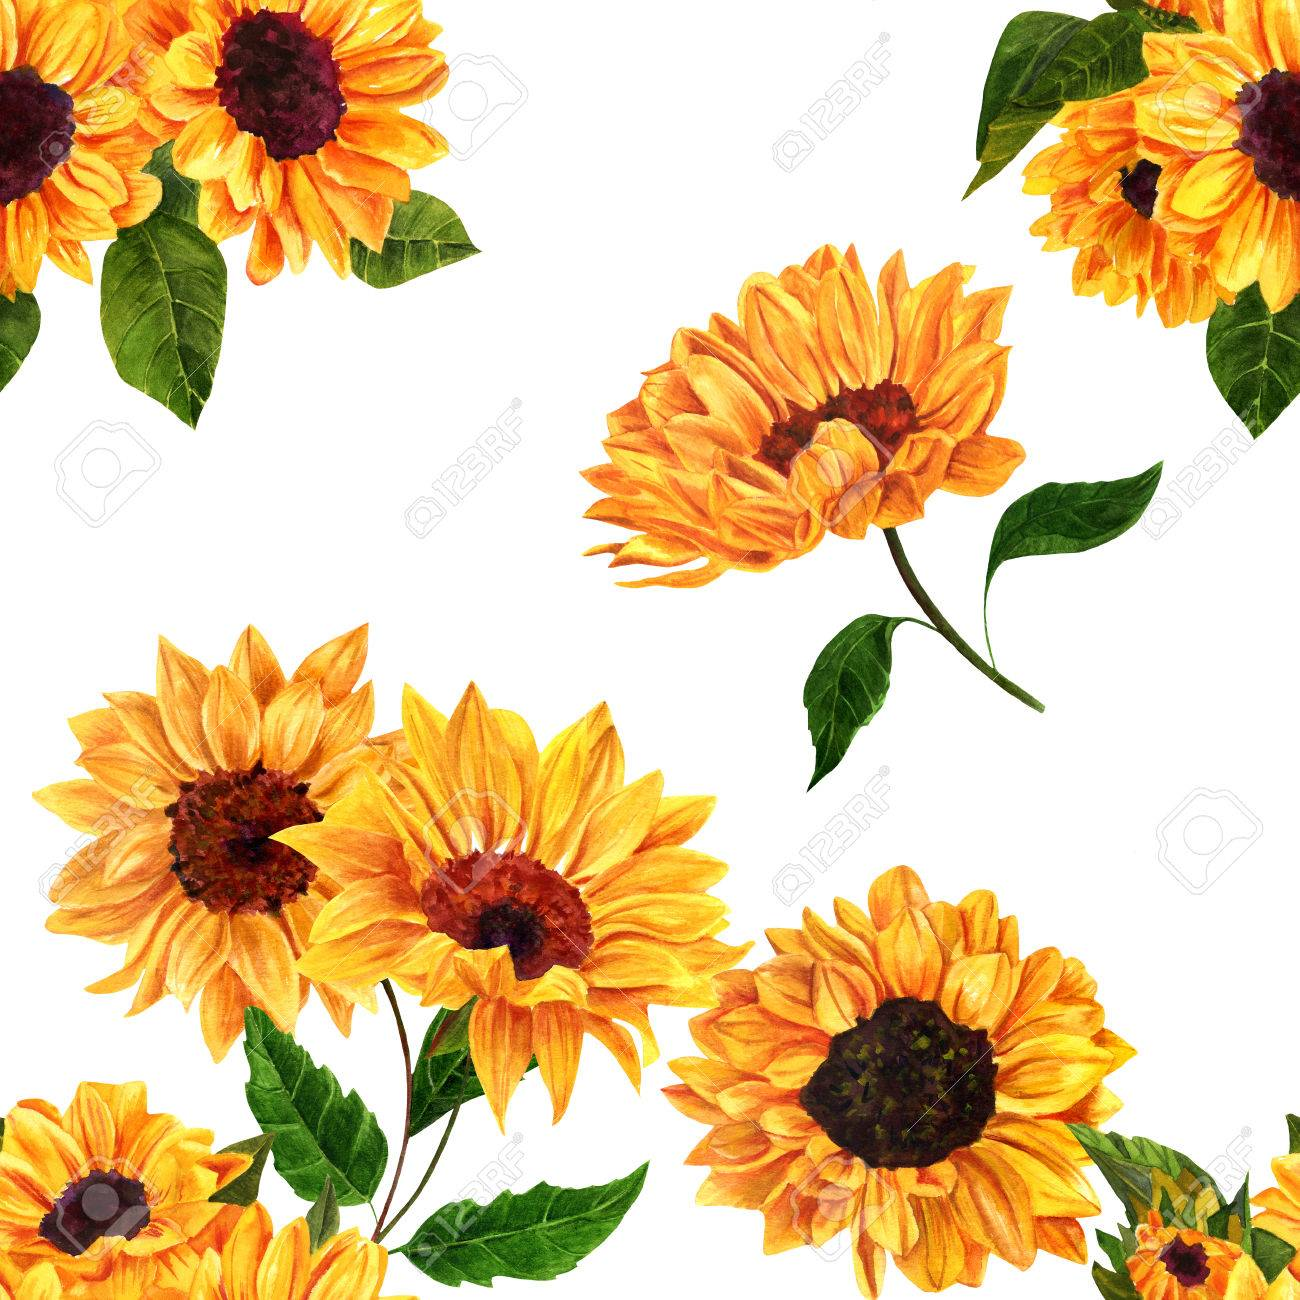 A seamless pattern with hand drawn vibrant yellow watercolor sunflowers on white background, vintage style floral repeat print - 63699793